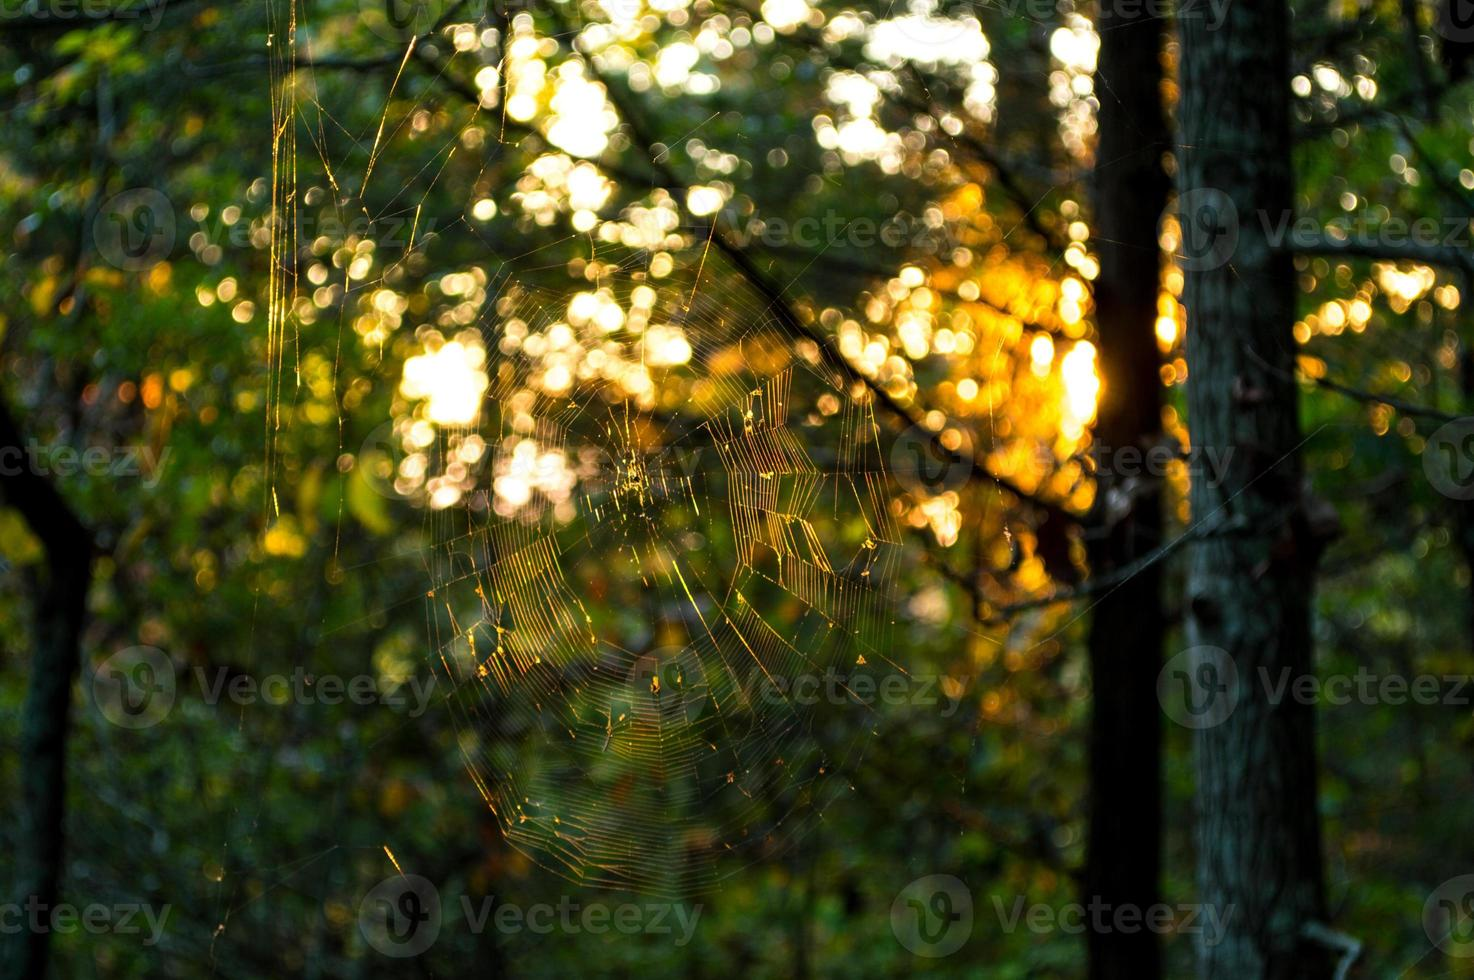 Spiderweb backlit by the setting sun photo